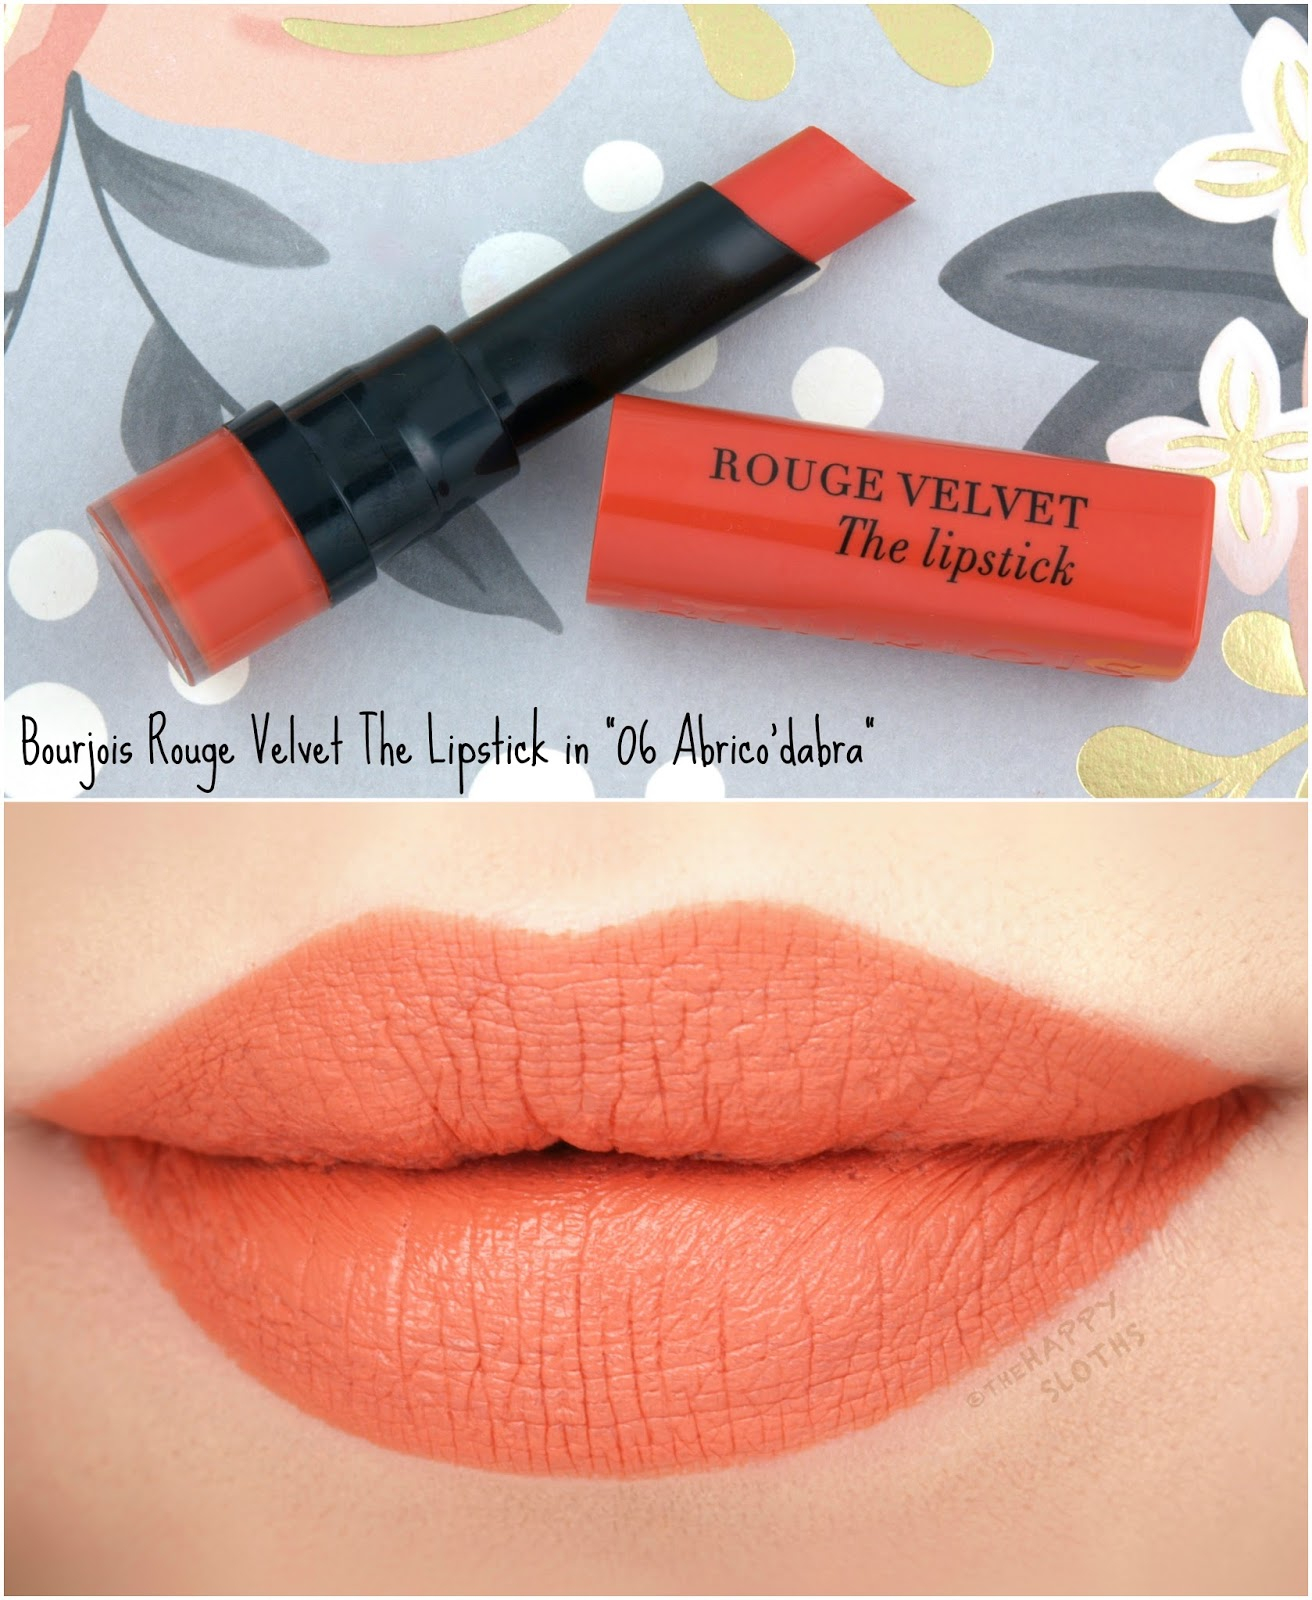 "Bourjois | Rouge Velvet The Lipstick in ""06 Abrico' dabra"": Review and Swatches"